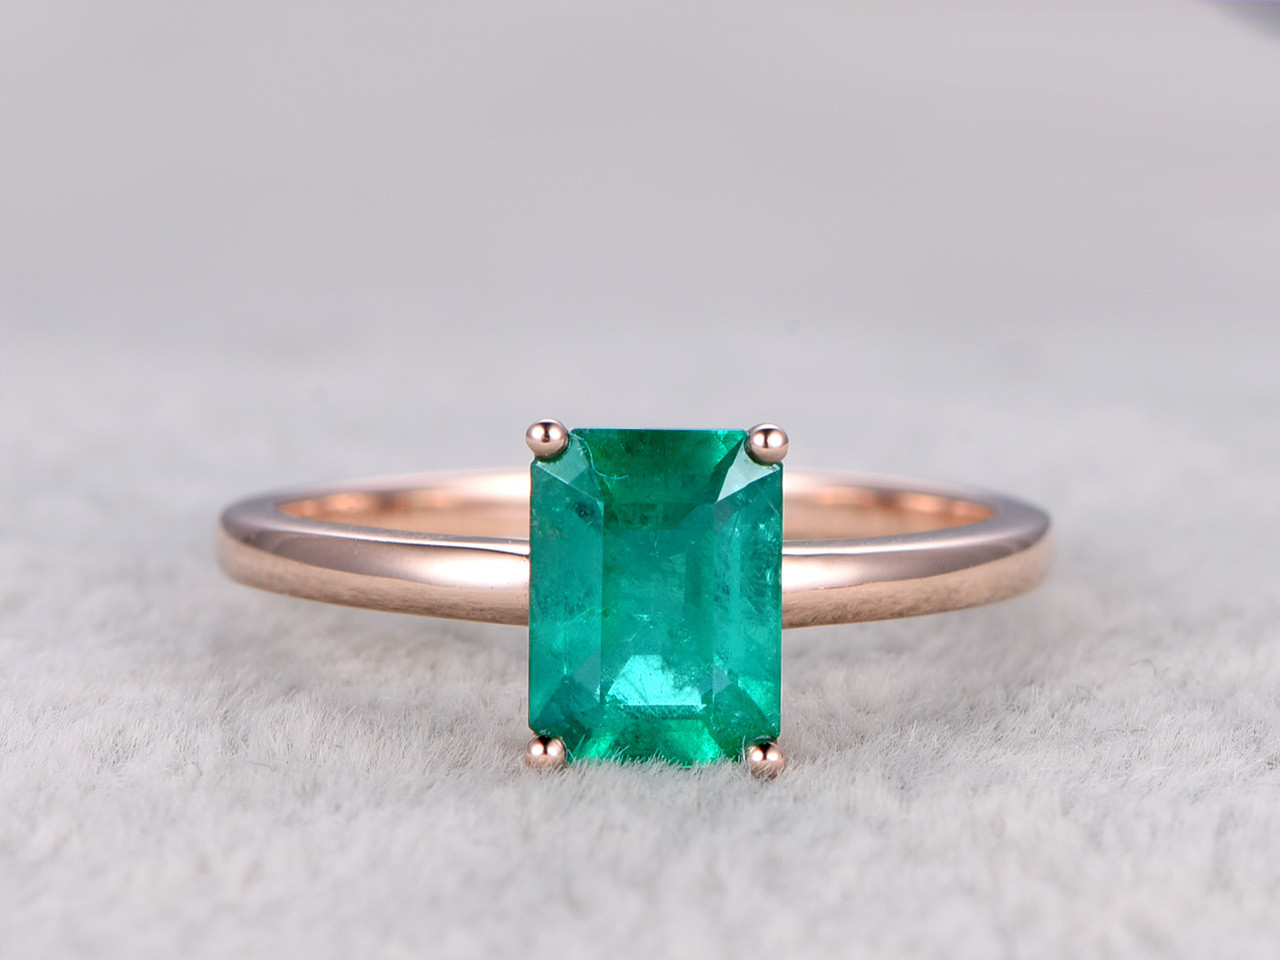 white engagement engagent il j r accents product and emerald solitaire sapphire fullxfull ring gold colombian